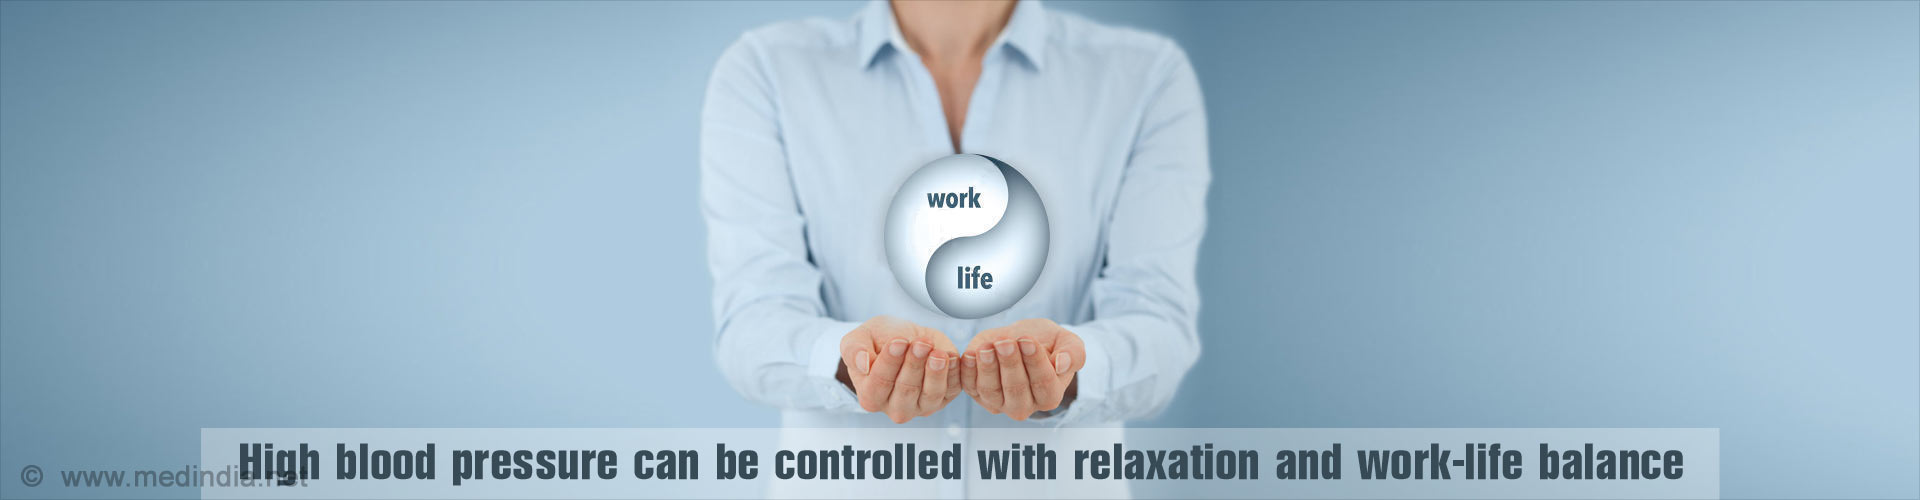 High blood pressure can be controlled with relaxation and work-life balance